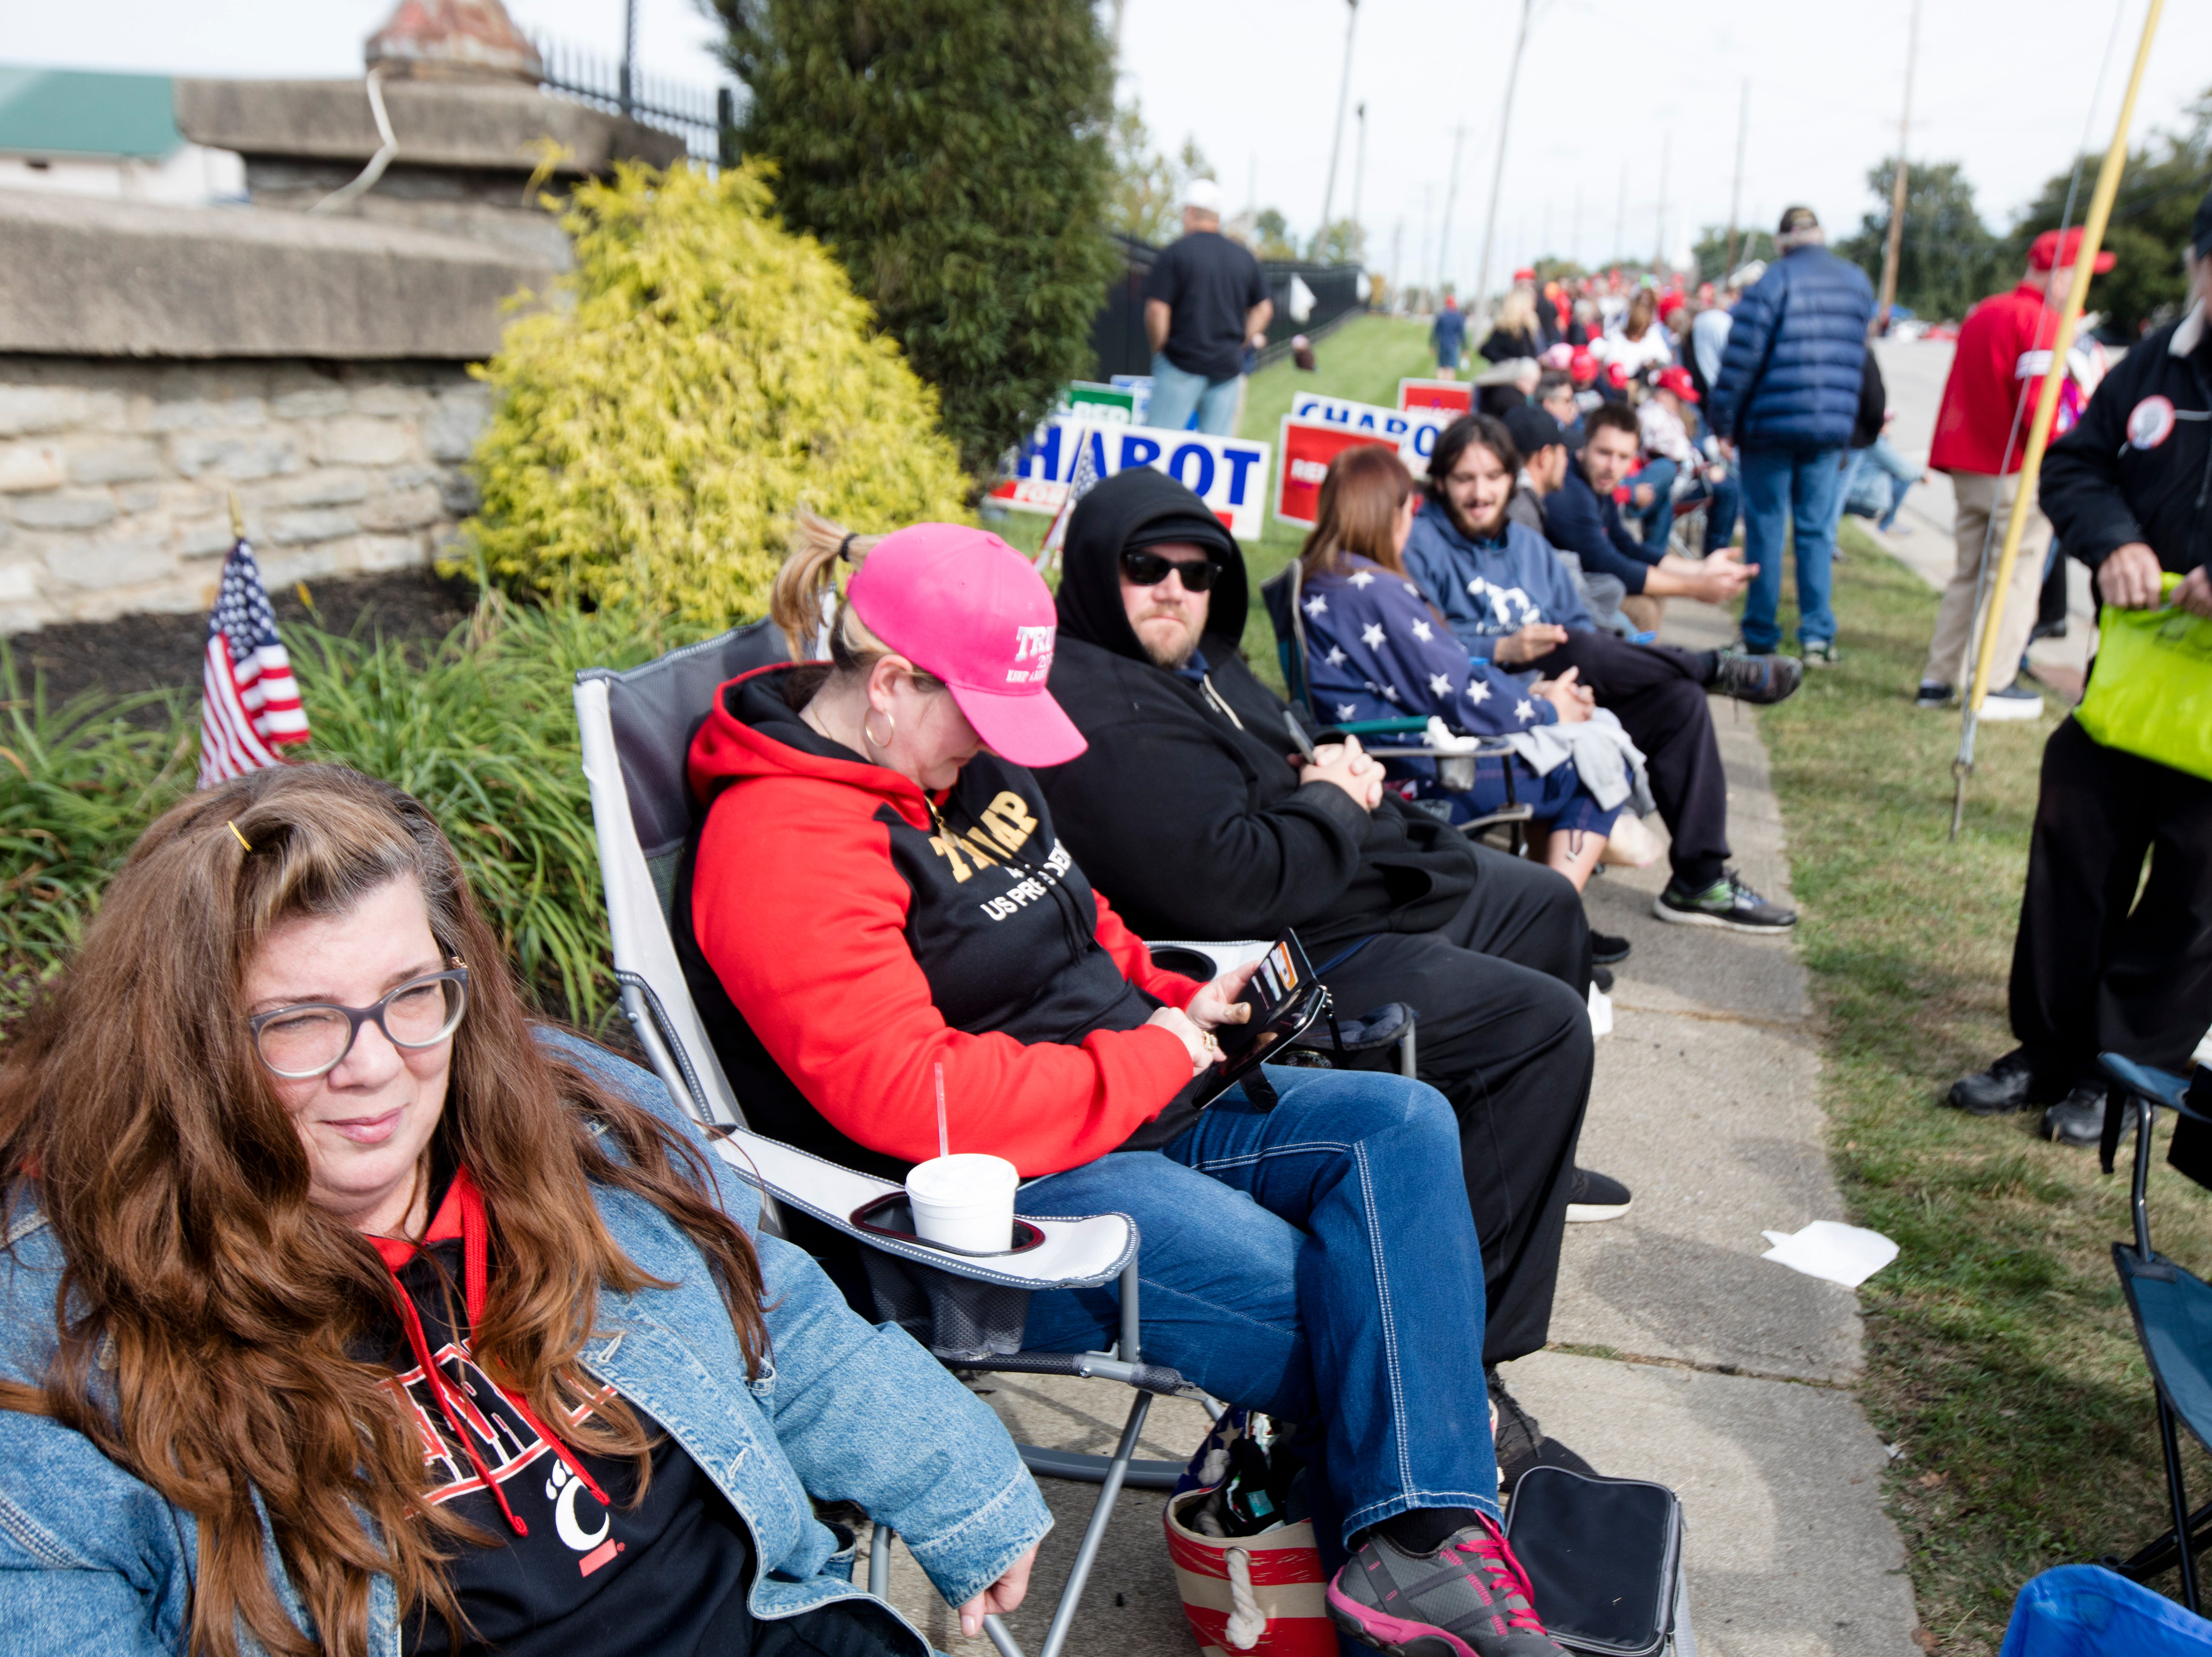 Meldia Kinman, of Williamsburg, Ohio, sits in a chair at the front of the line for President Donald J. Trump's Make America Great Again Rally in Lebanon, Ohio, on Friday, Oct. 12, 2018. Kinman said she arrived the night before to have a good spot in line.